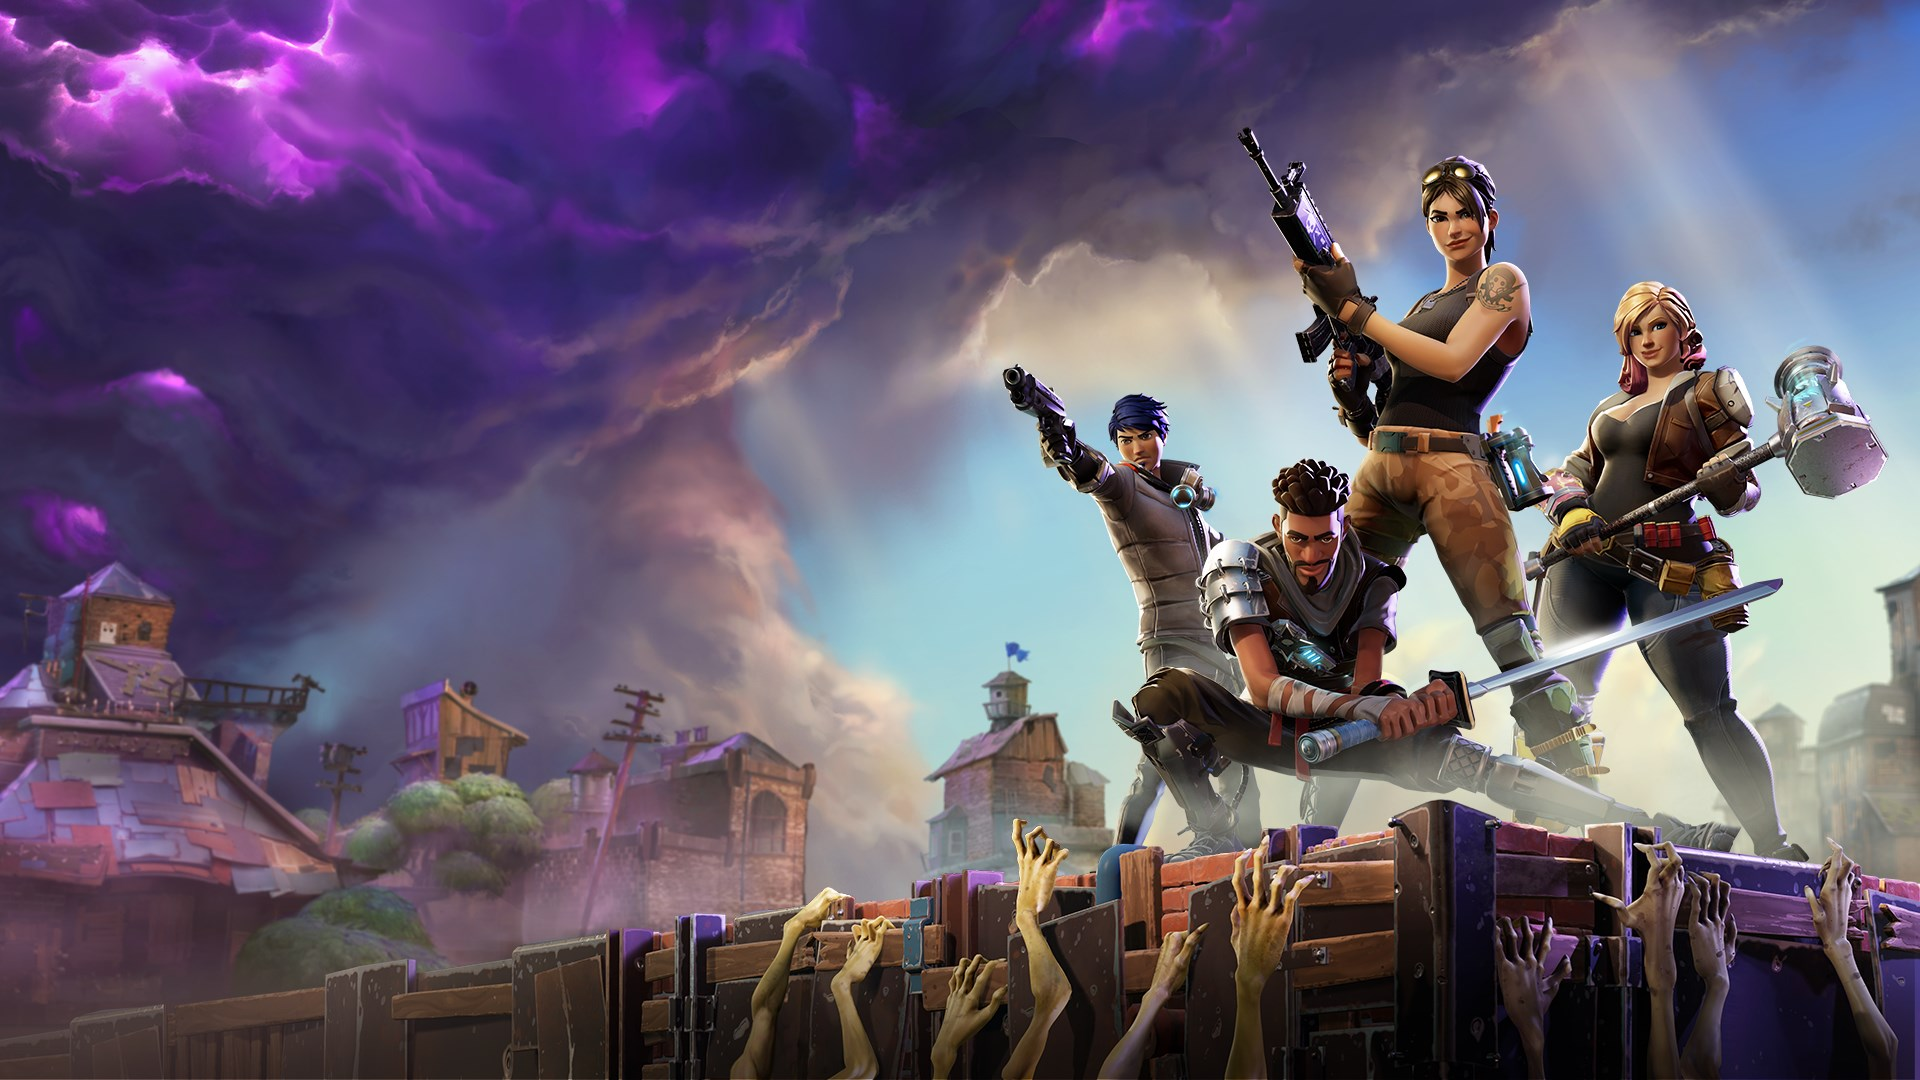 Fortnite Xbox Series X S Ps5 Improvements Include Faster Loading And 60 Fps Split Screen